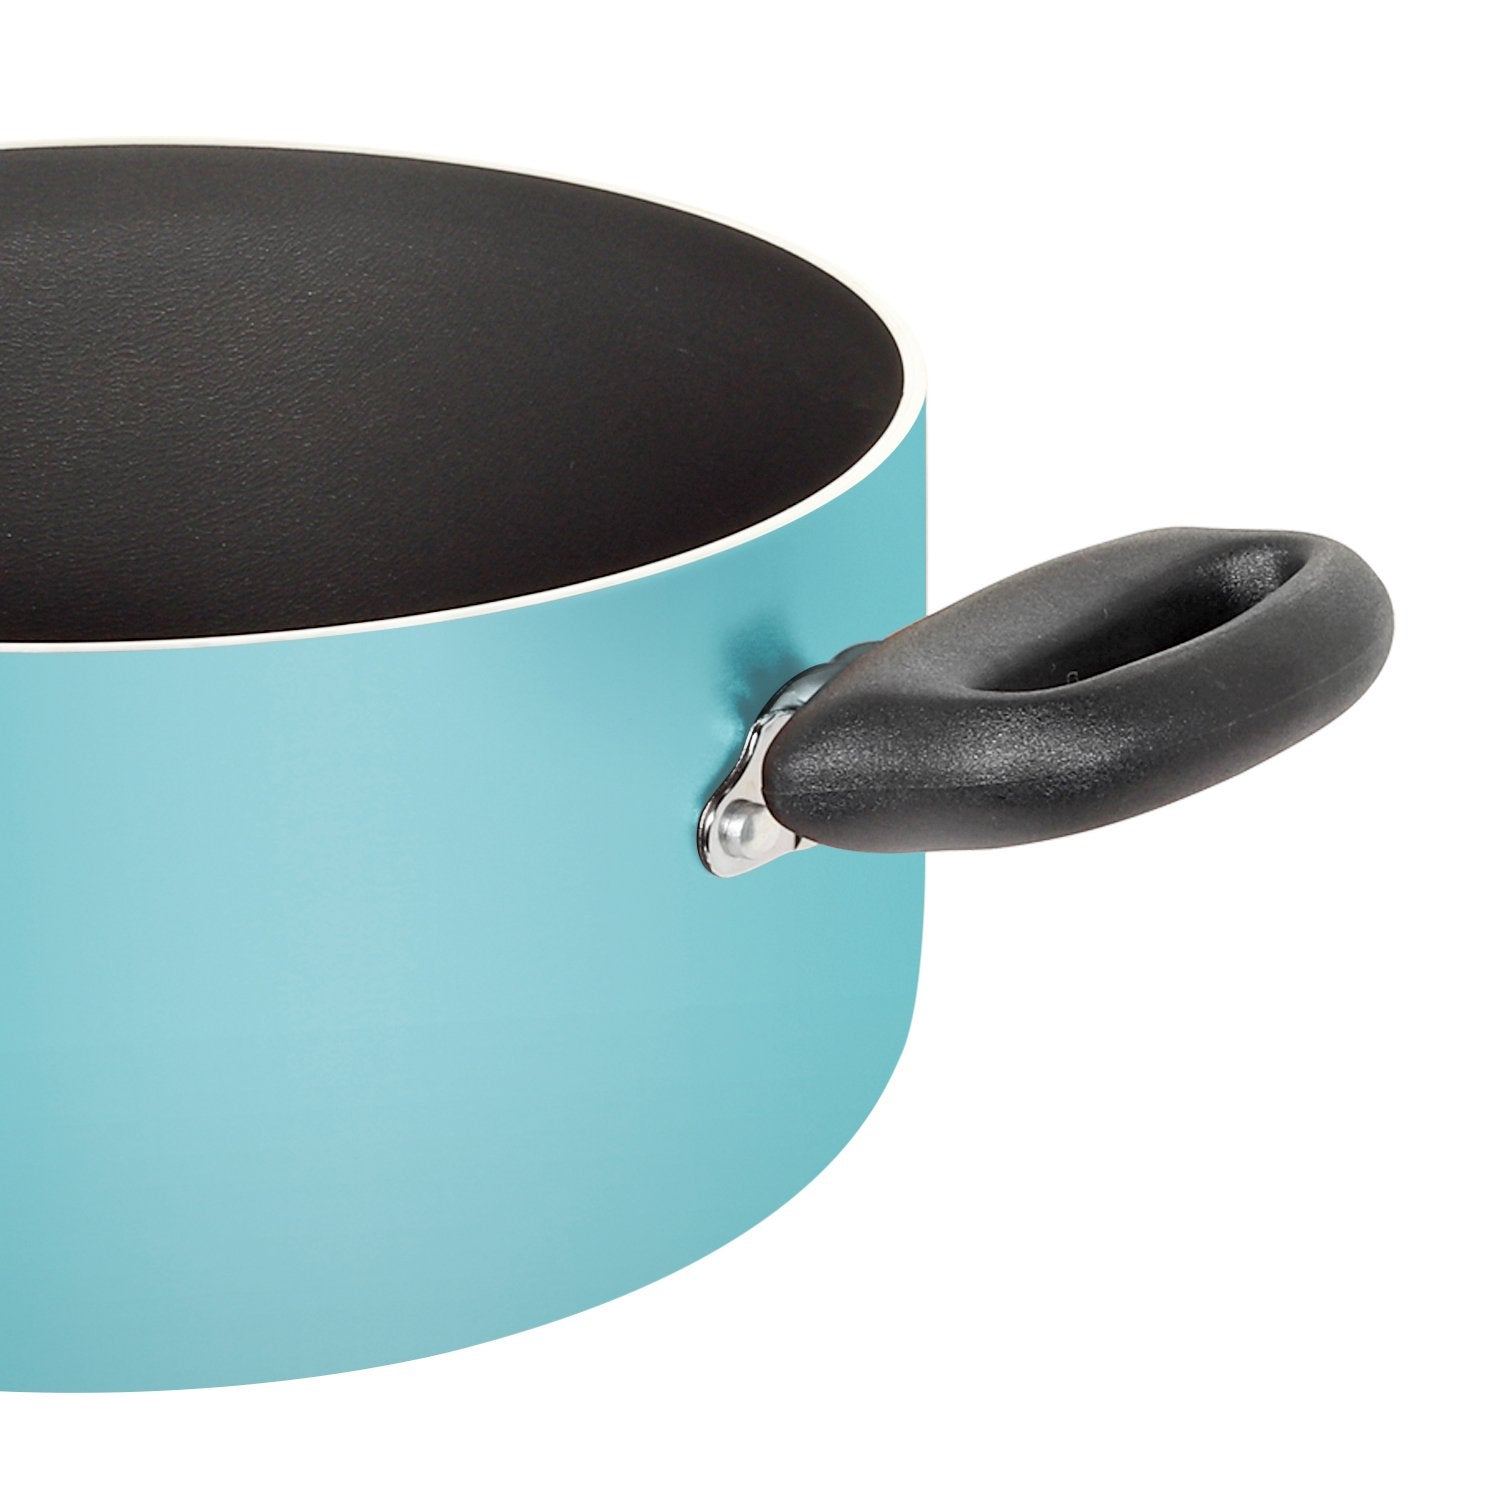 Meyer Non-Stick 3-Piece Cookware Set, Casserole + Frypan (Suitable For Gas & Electric Cooktops)